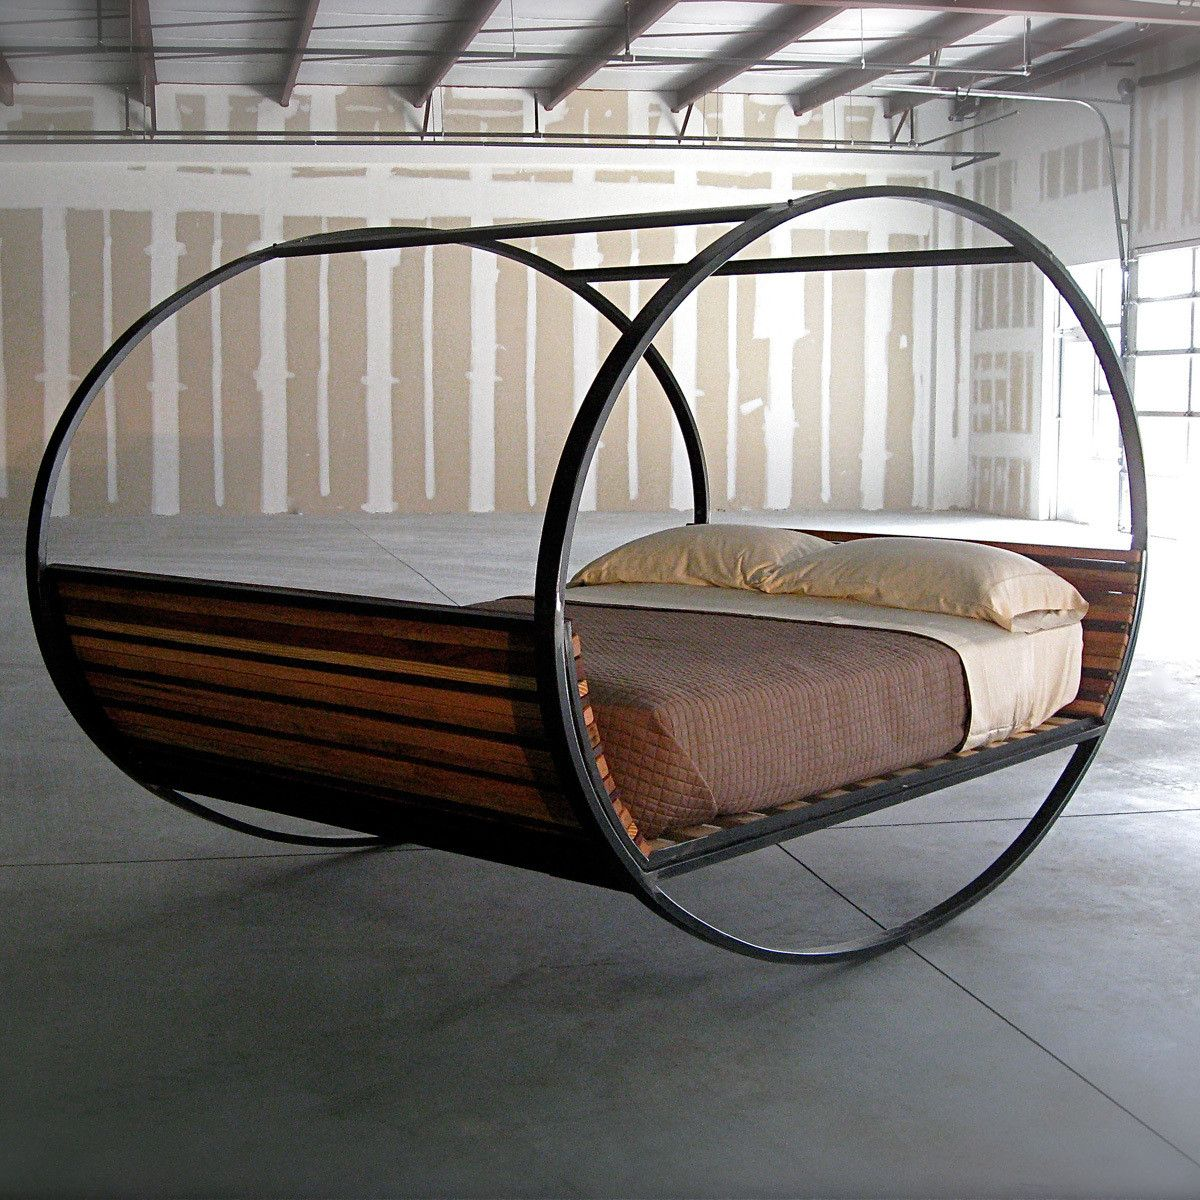 rocking bed... love it